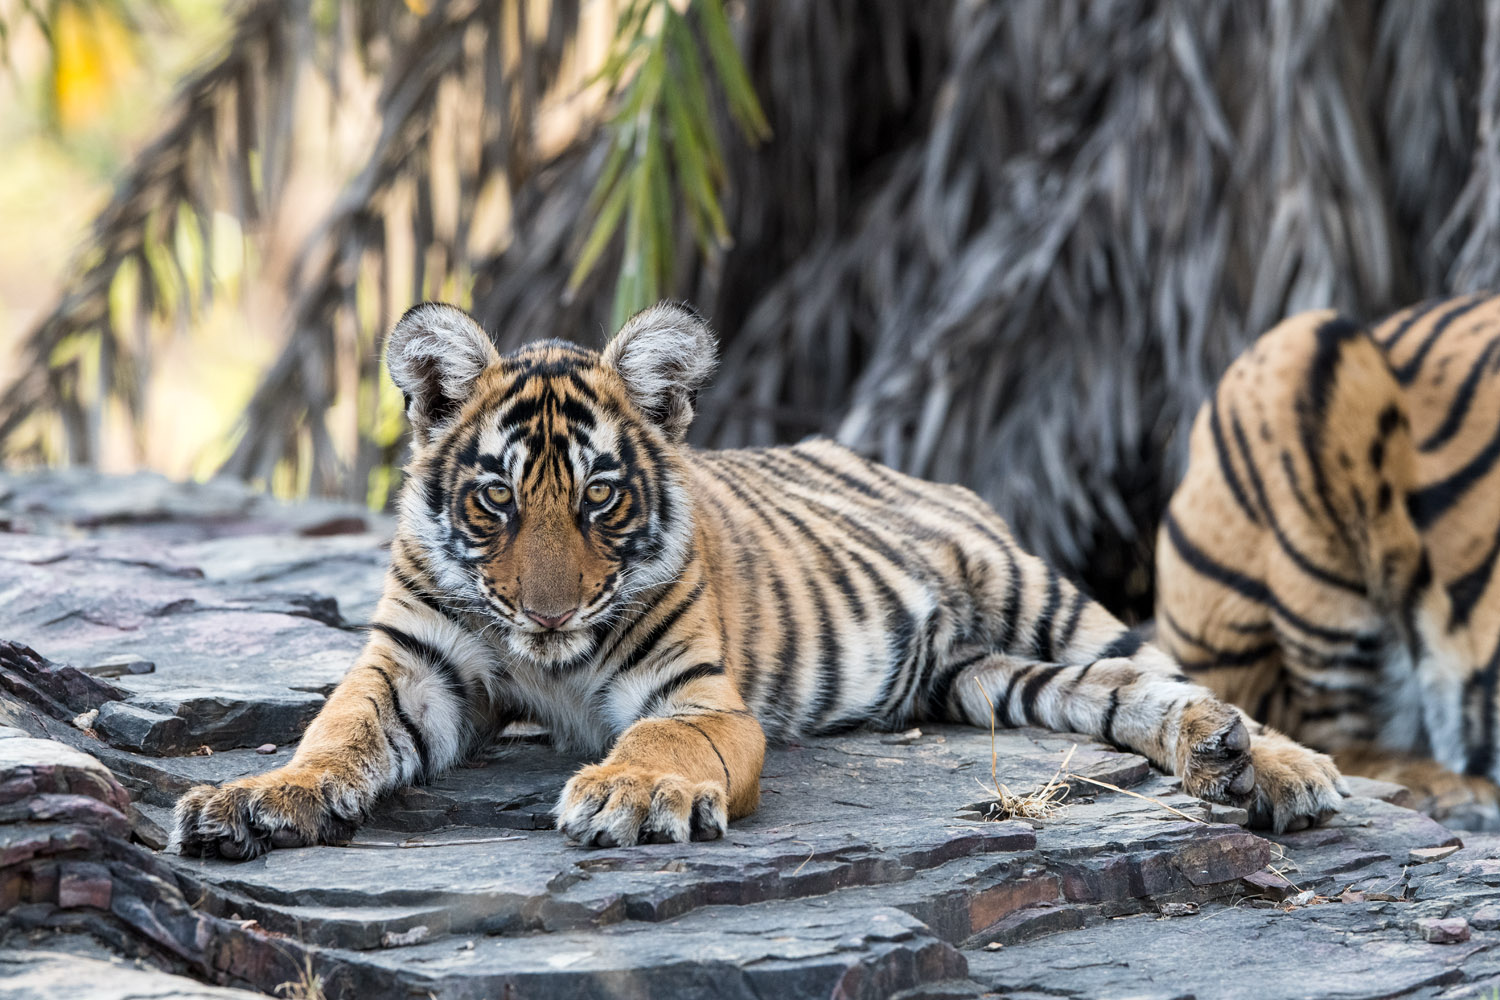 Bengal tiger cub resting on rock, Ranthambhore National Park, Rajasthan, India